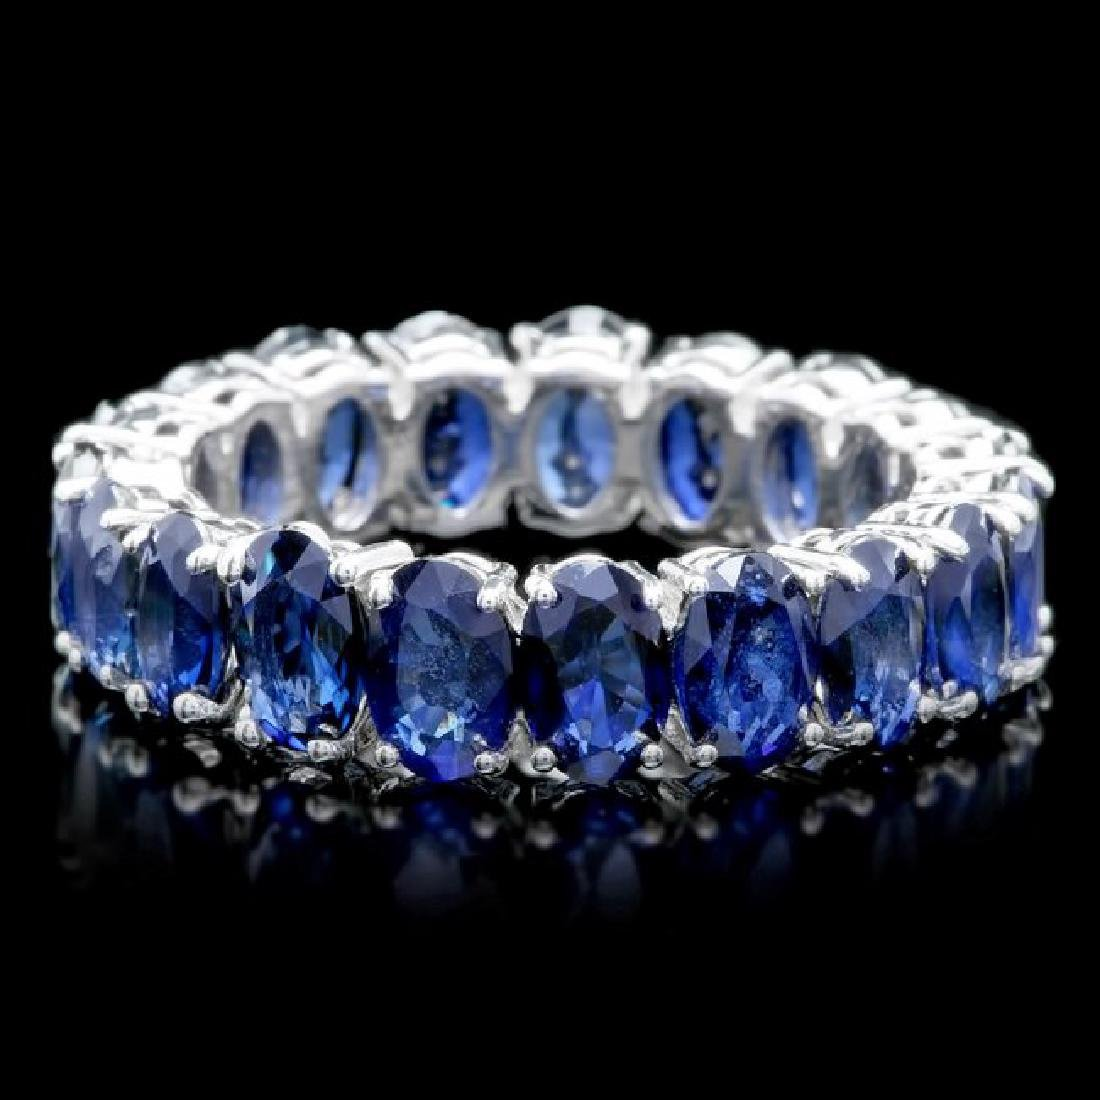 14k White Gold 9.00ct Sapphire Ring